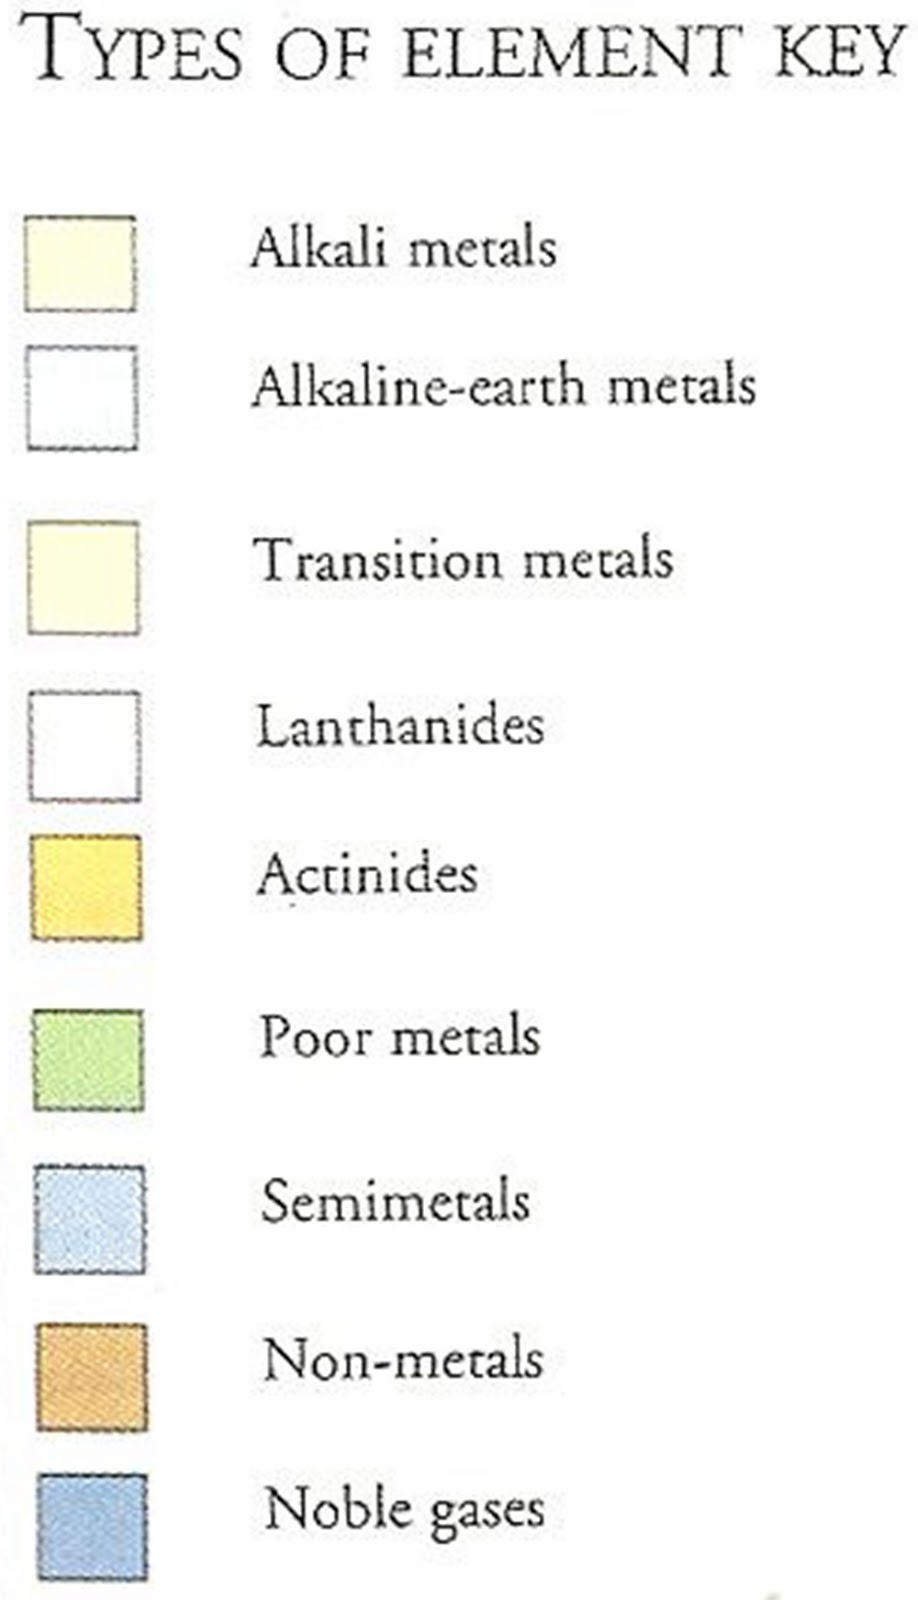 Manash subhaditya edusoft periodic table pictorial journey of periodic table pictorial journey of metals part 2 urtaz